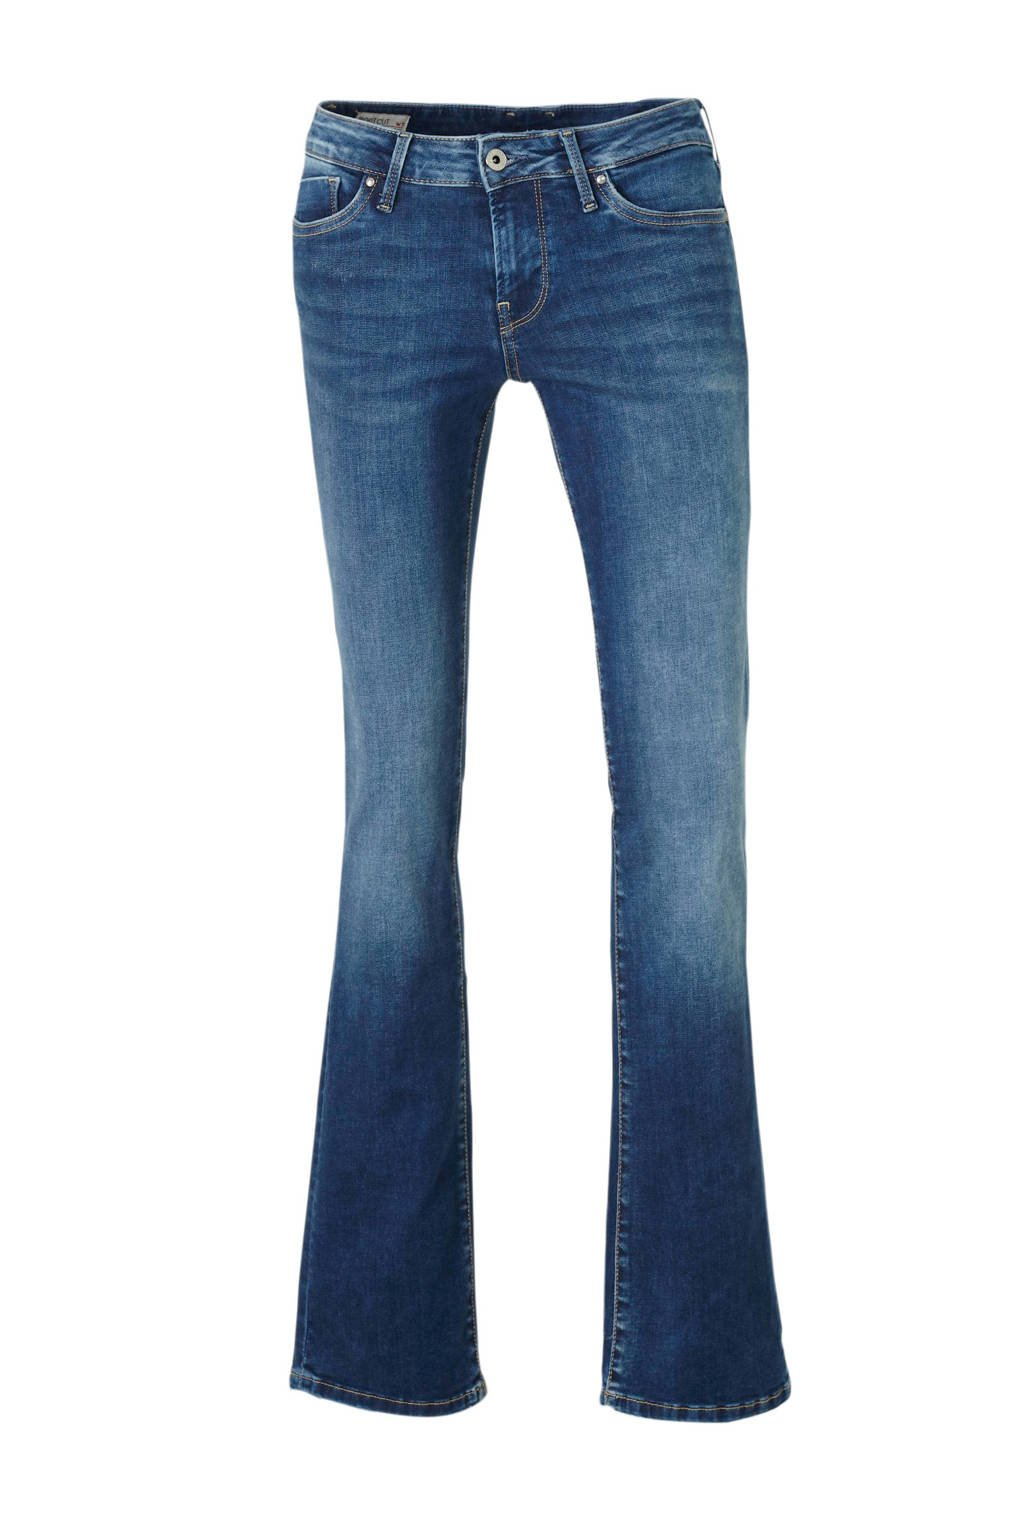 Pepe Jeans bootcut jeans Piccadilly, Blauw